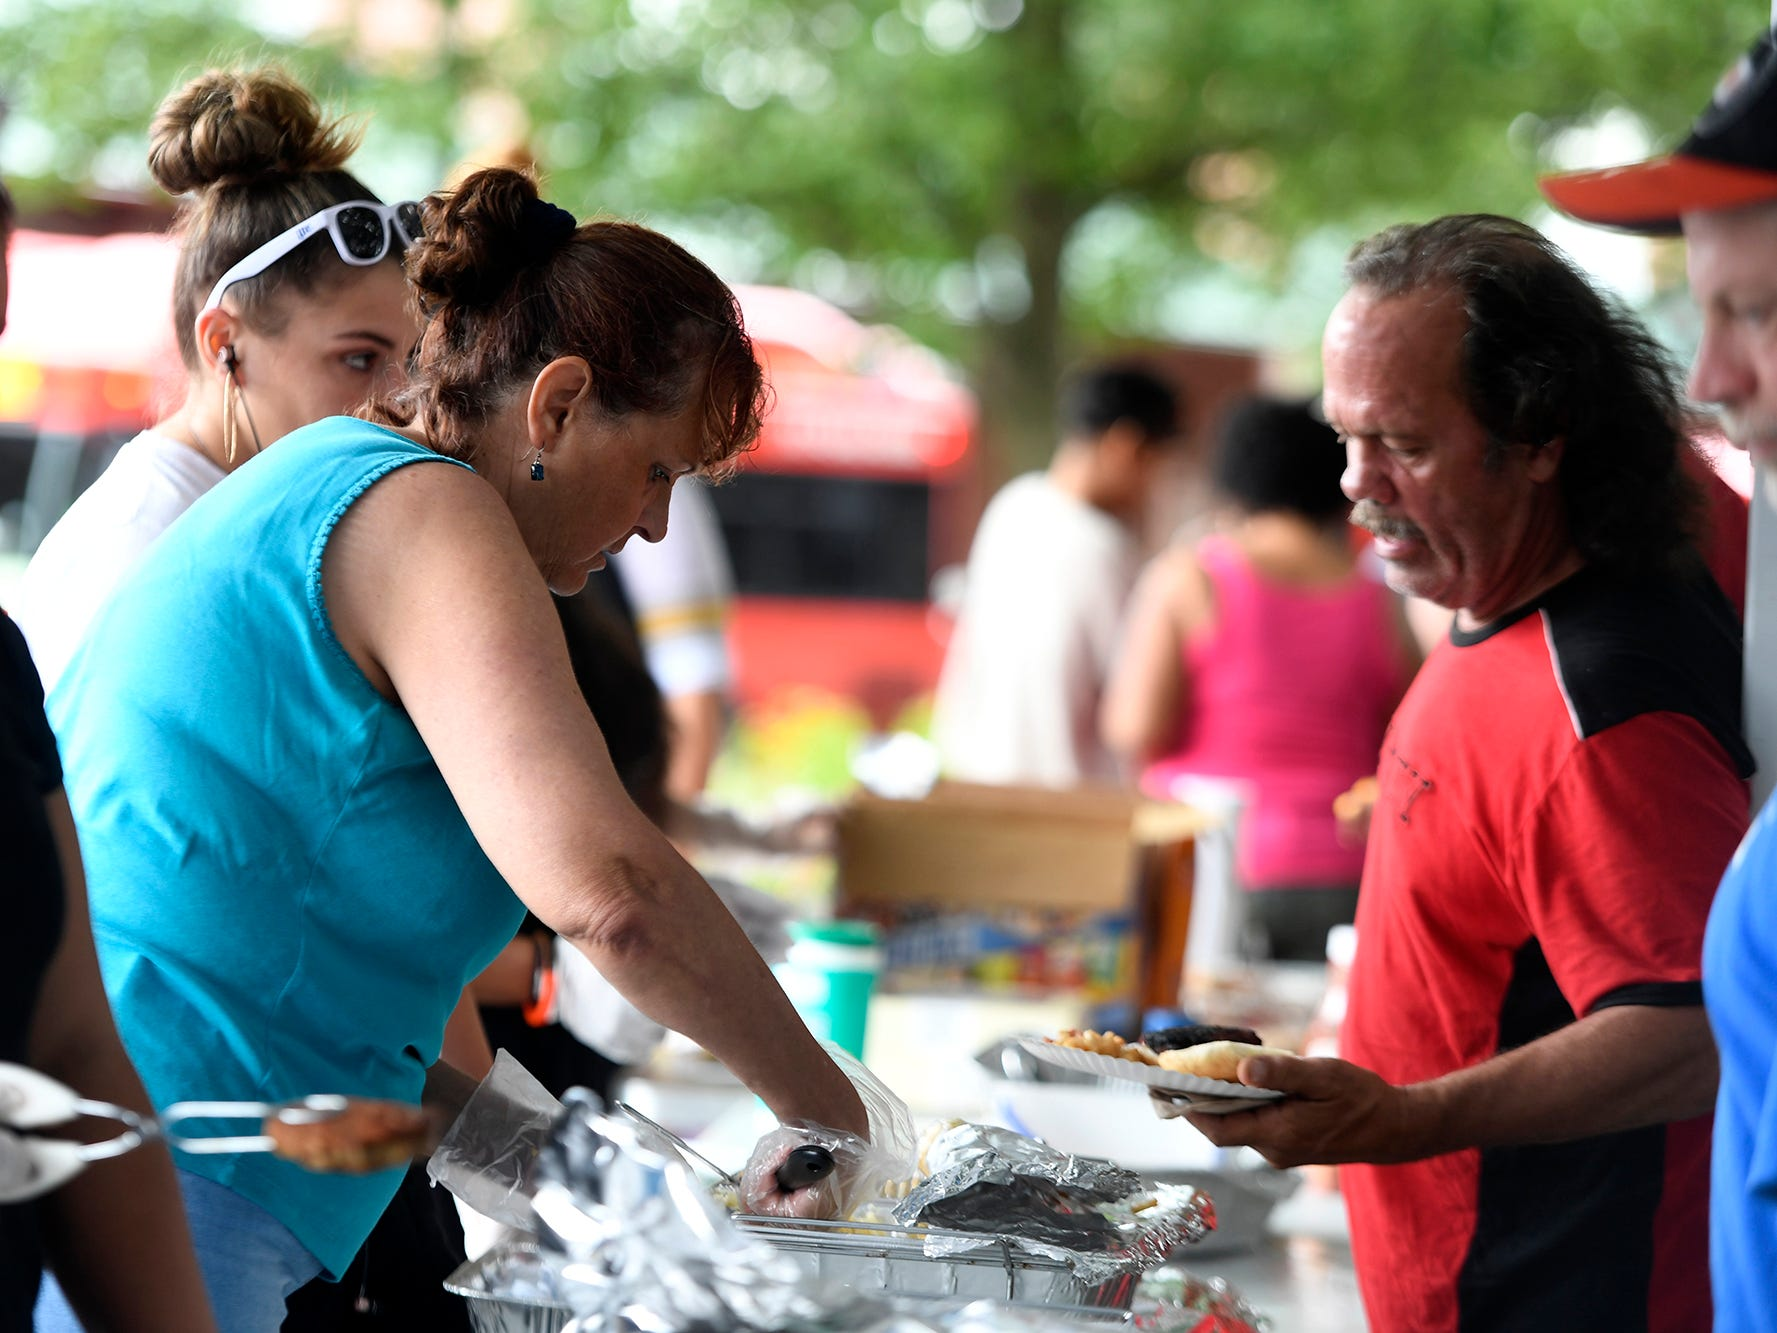 Volunteers with York Giving Helping Hands provide a meal for York's homeless and under-privileged along the Rail Trail in the city, Sunday, August 18,  2018. John A. Pavoncello photo